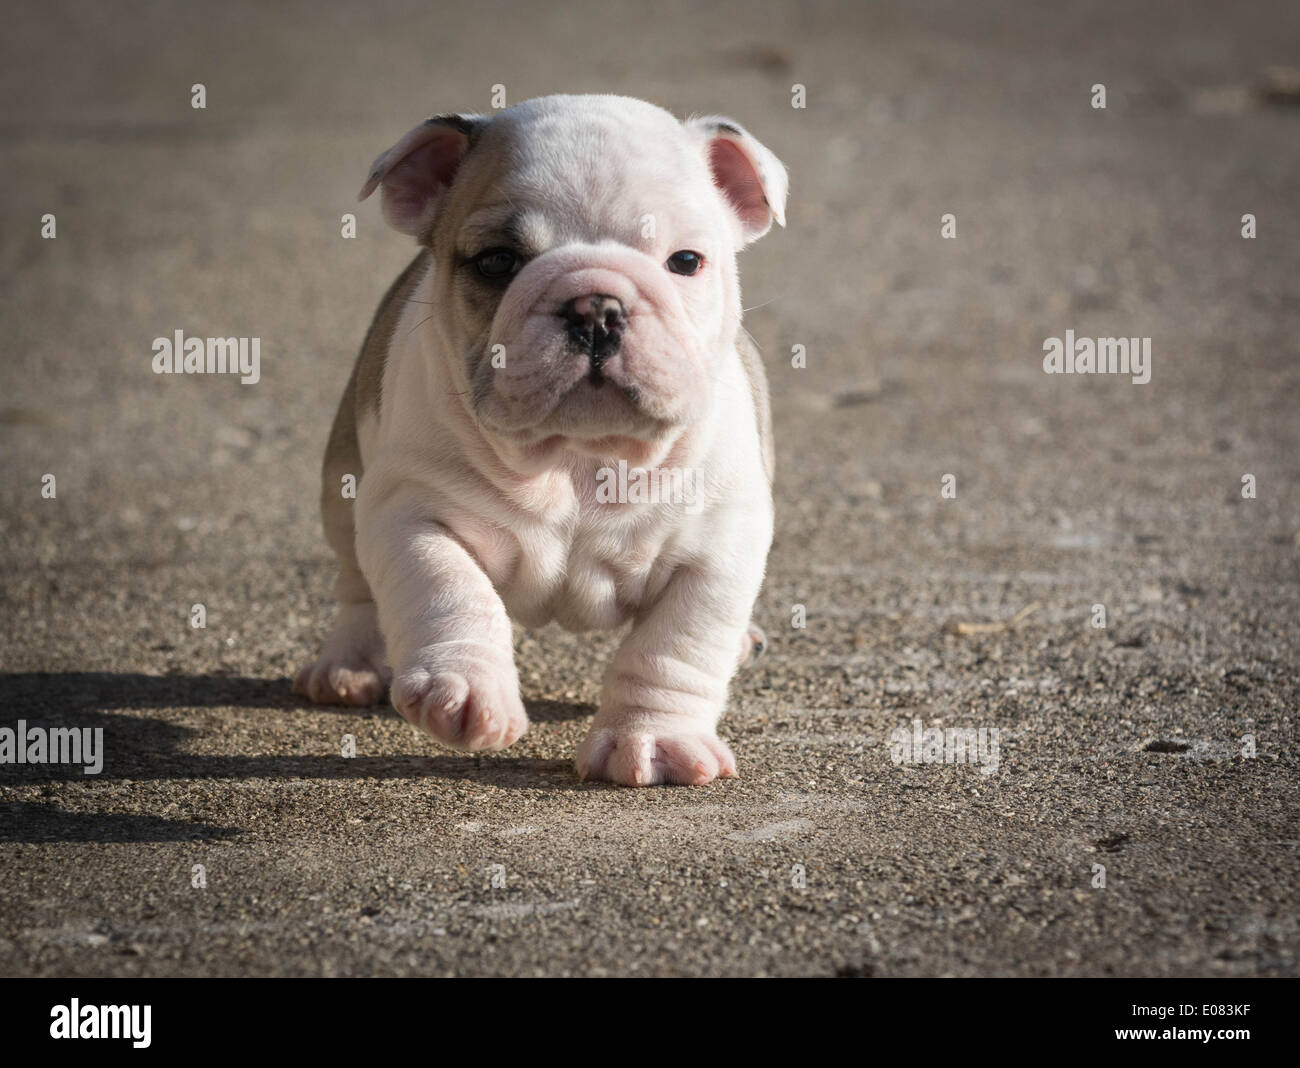 English Bulldog Puppy Running Outside 6 Weeks Old Stock Photo